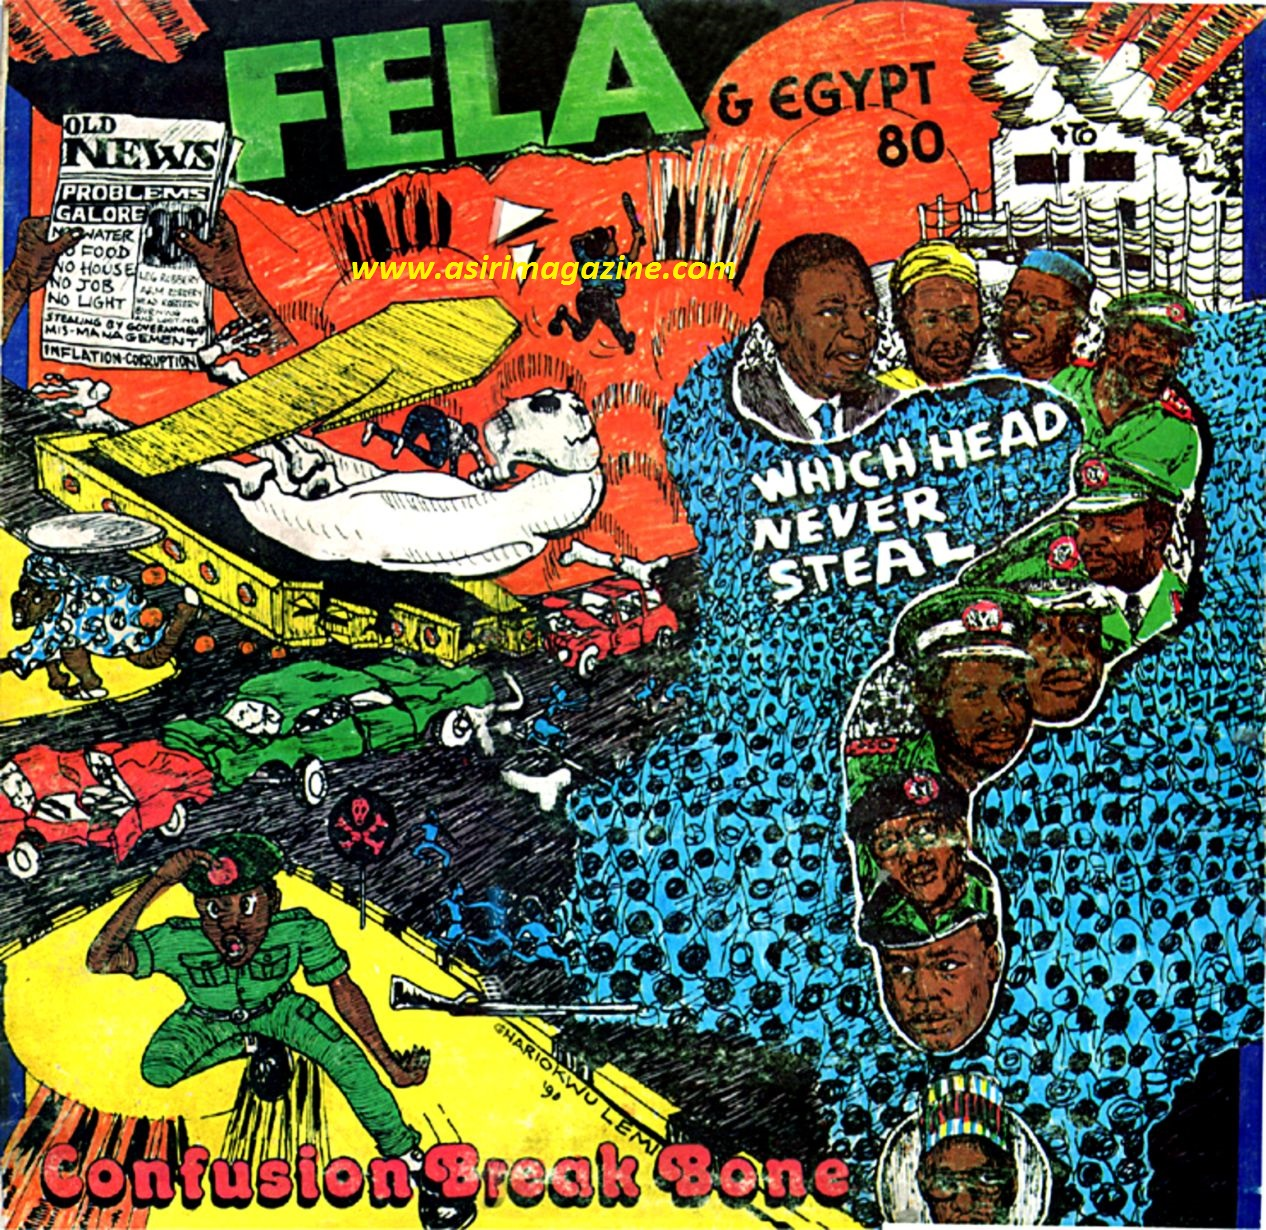 FELA KUTI - CONFUSION BREAK BONE